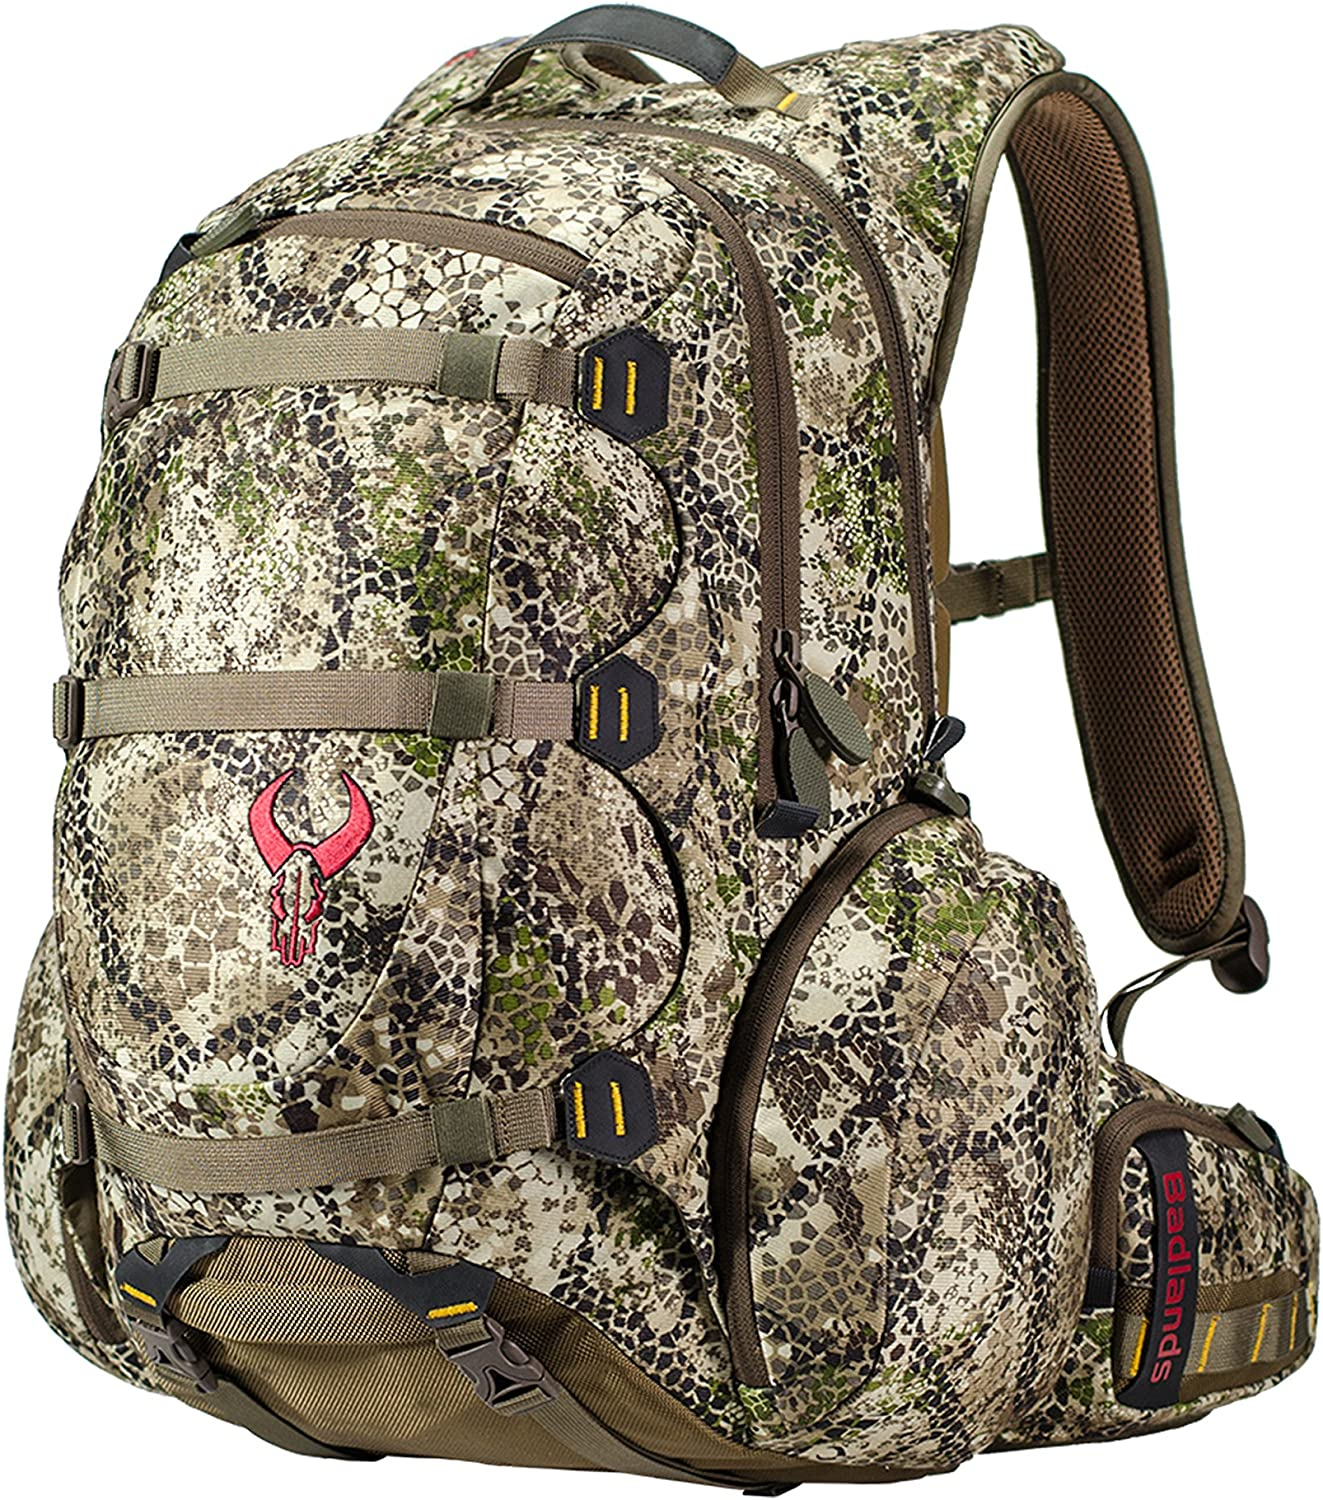 Bandlands Superday Backpack